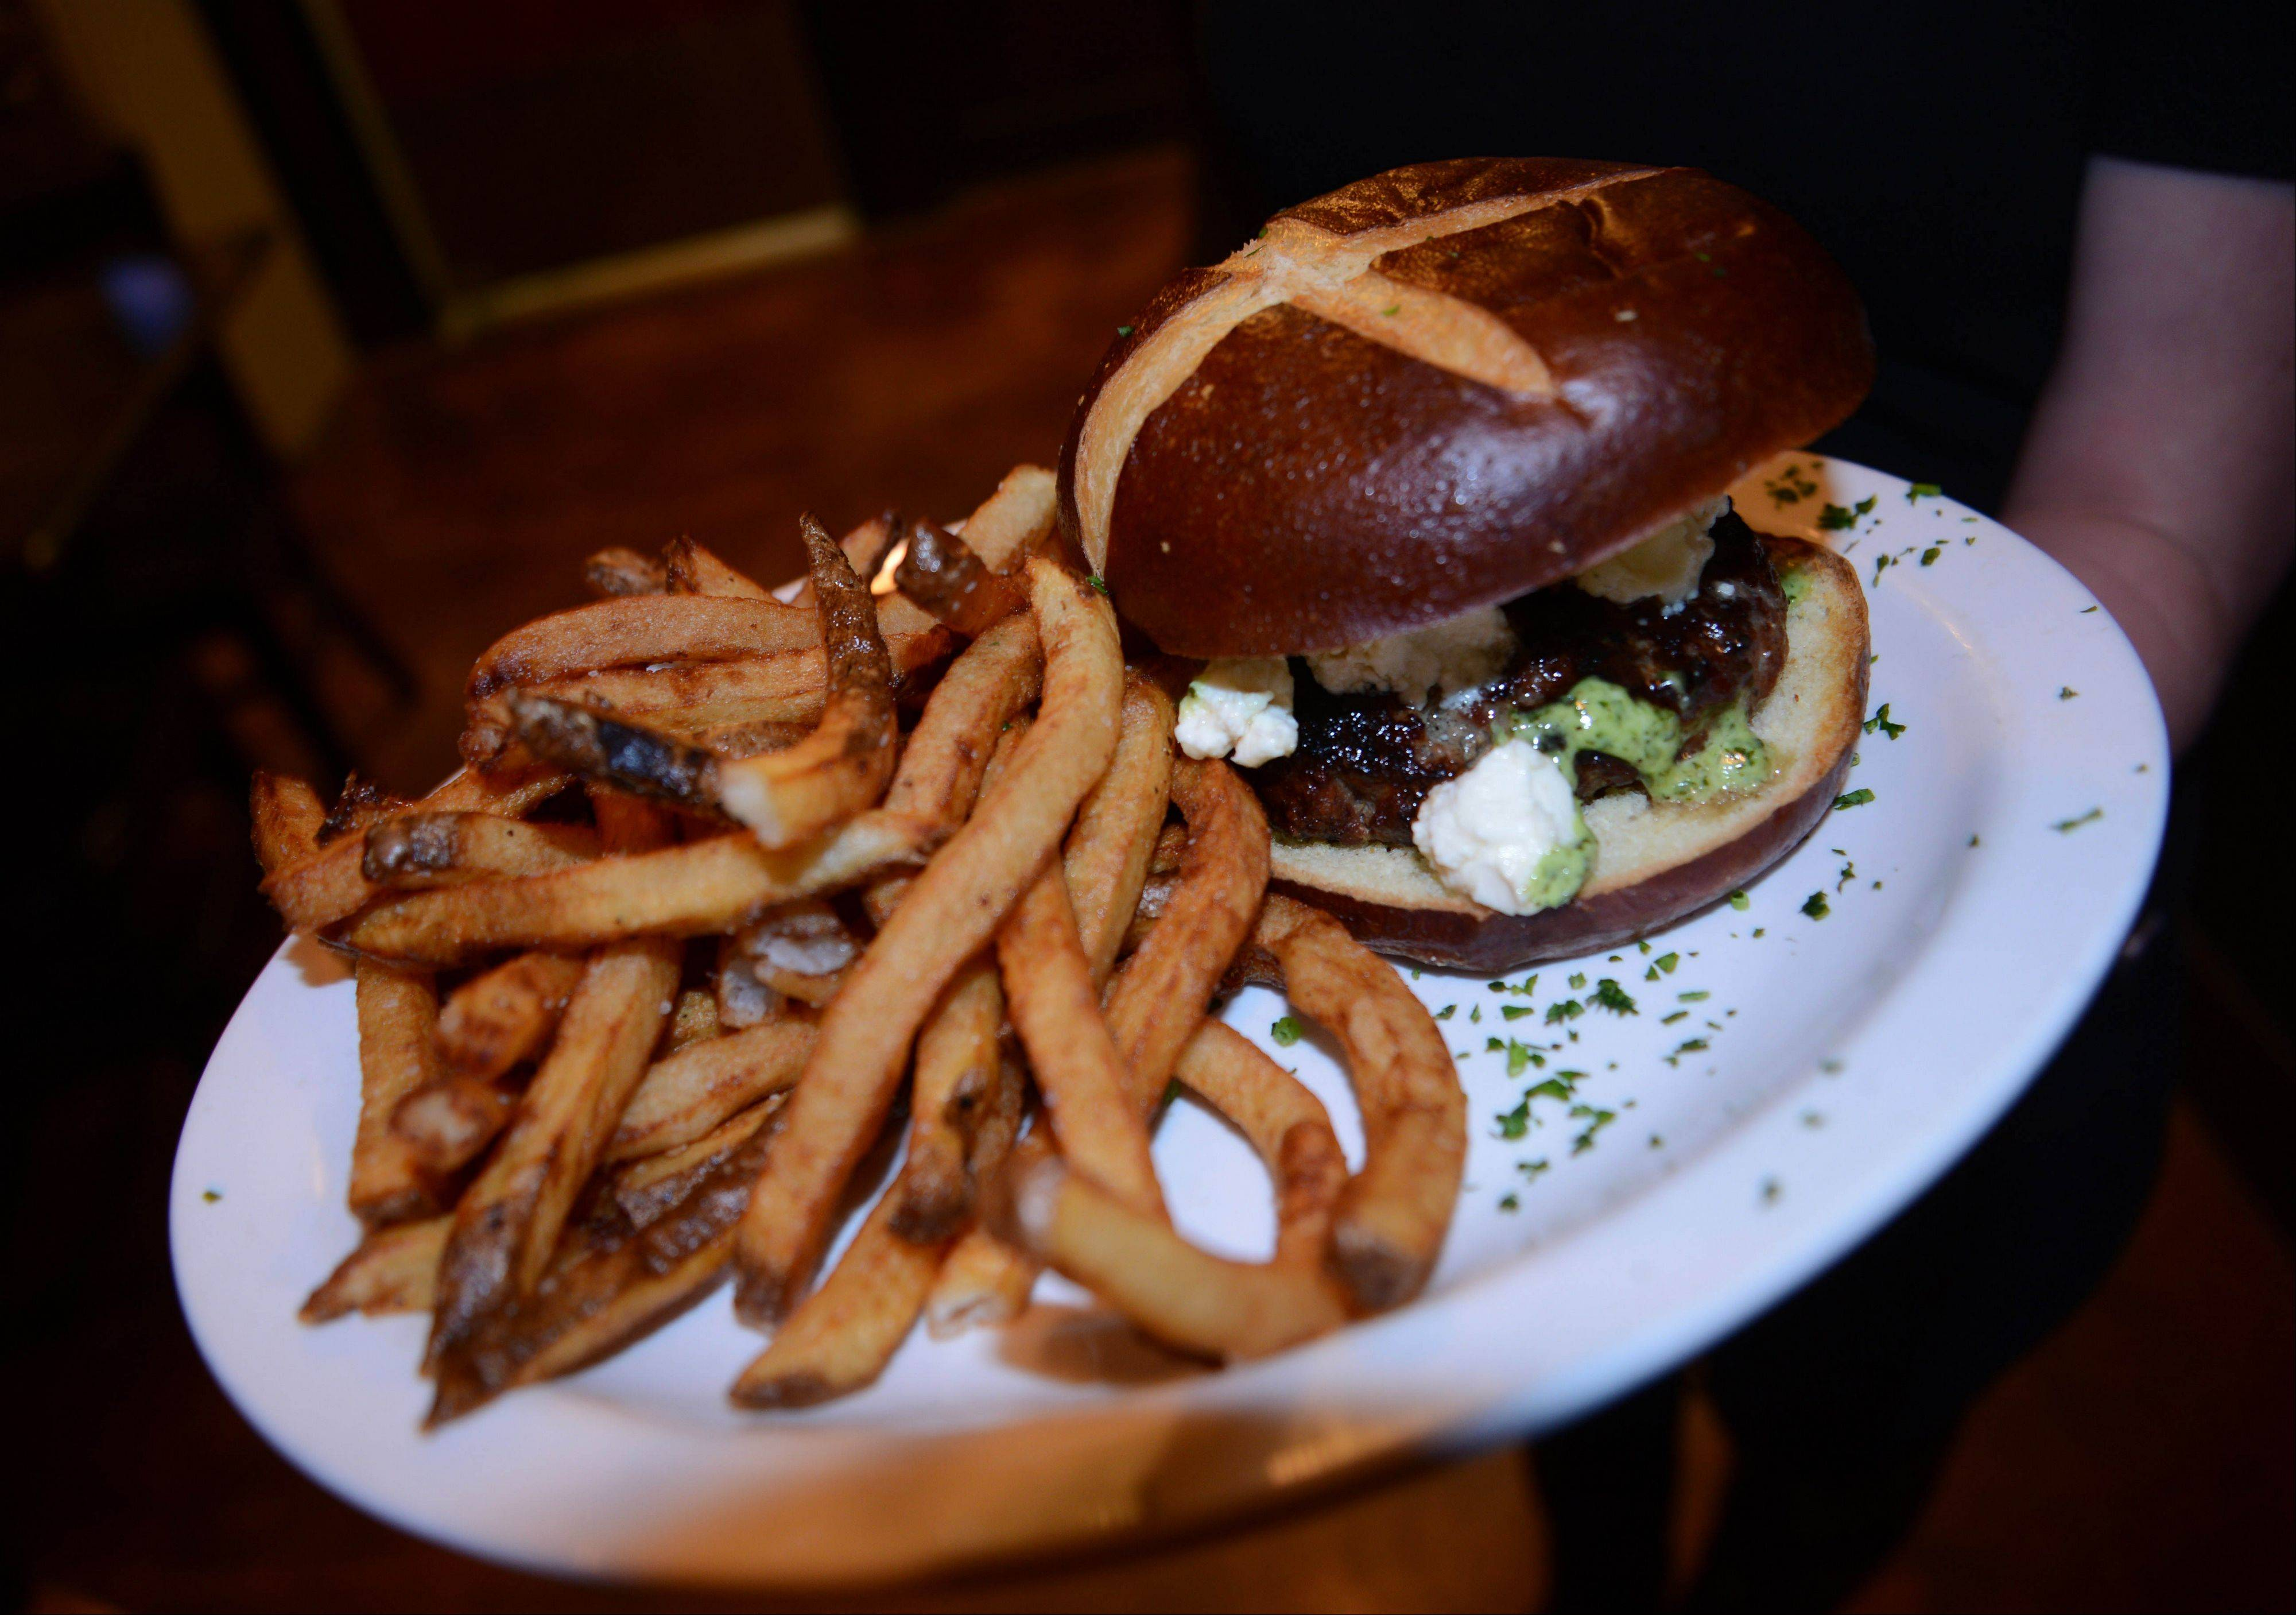 Jackson Avenue Pub offers an impressive lineup of craft beers and burgers in downtown Naperville.